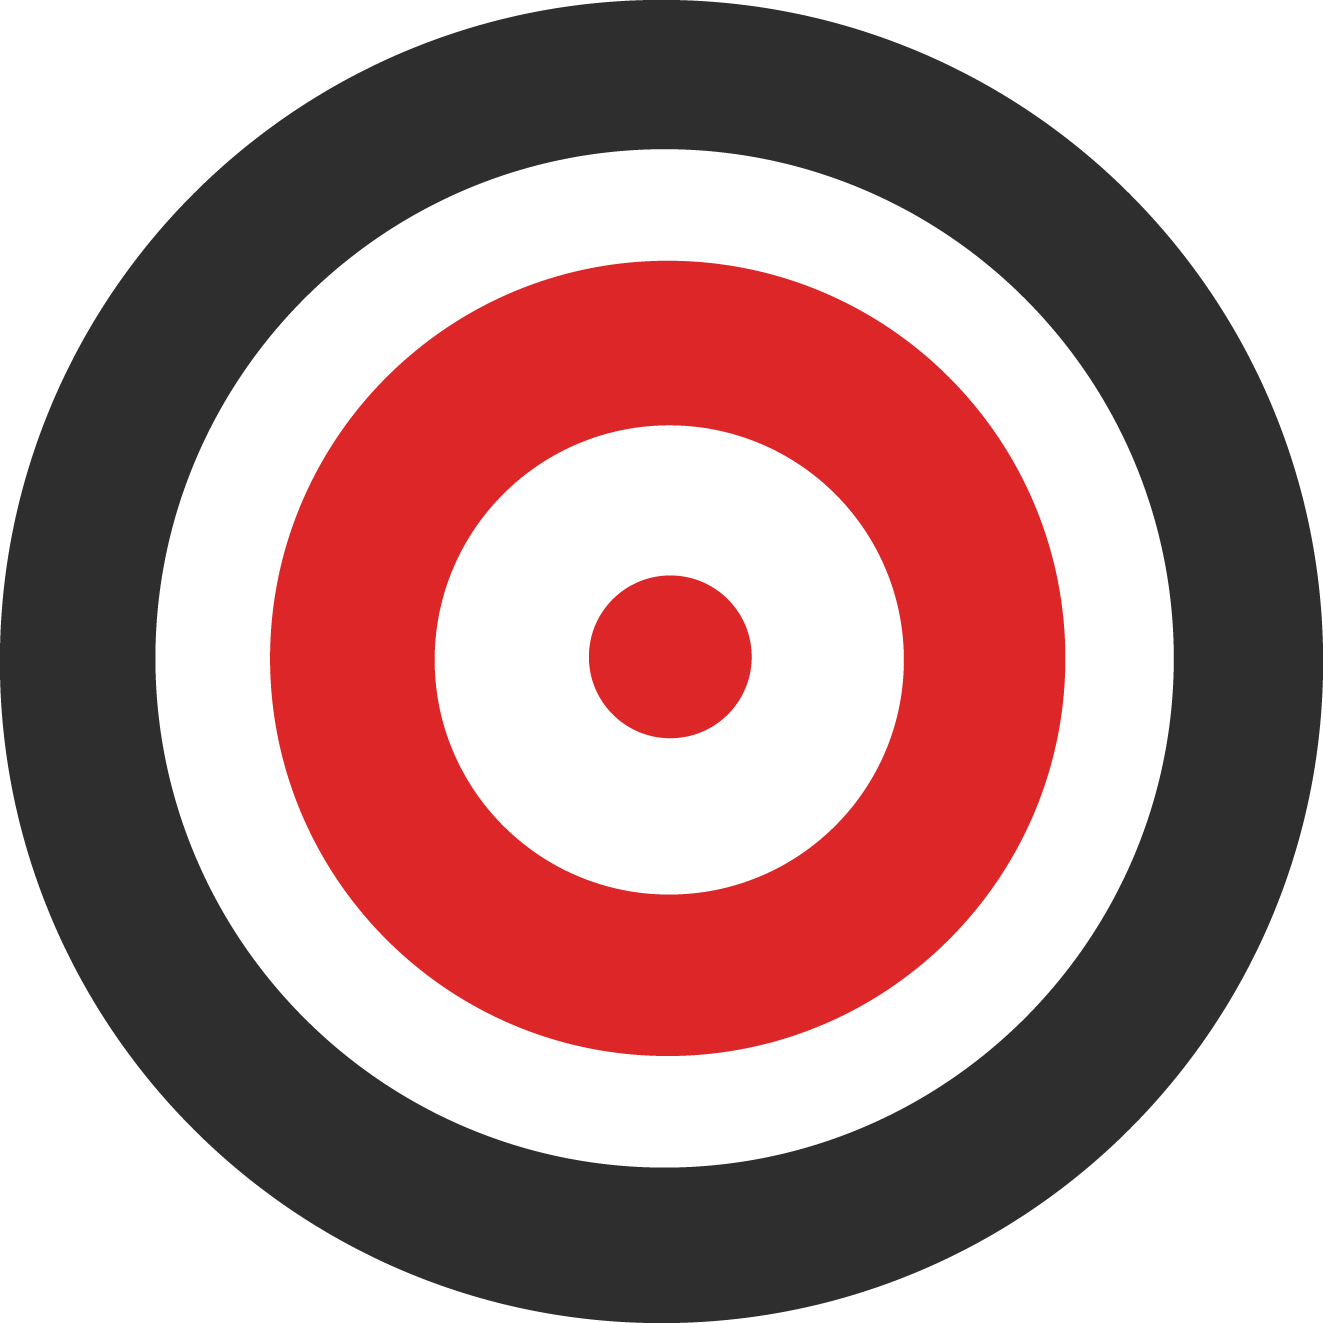 Png . Shot clipart shooting target